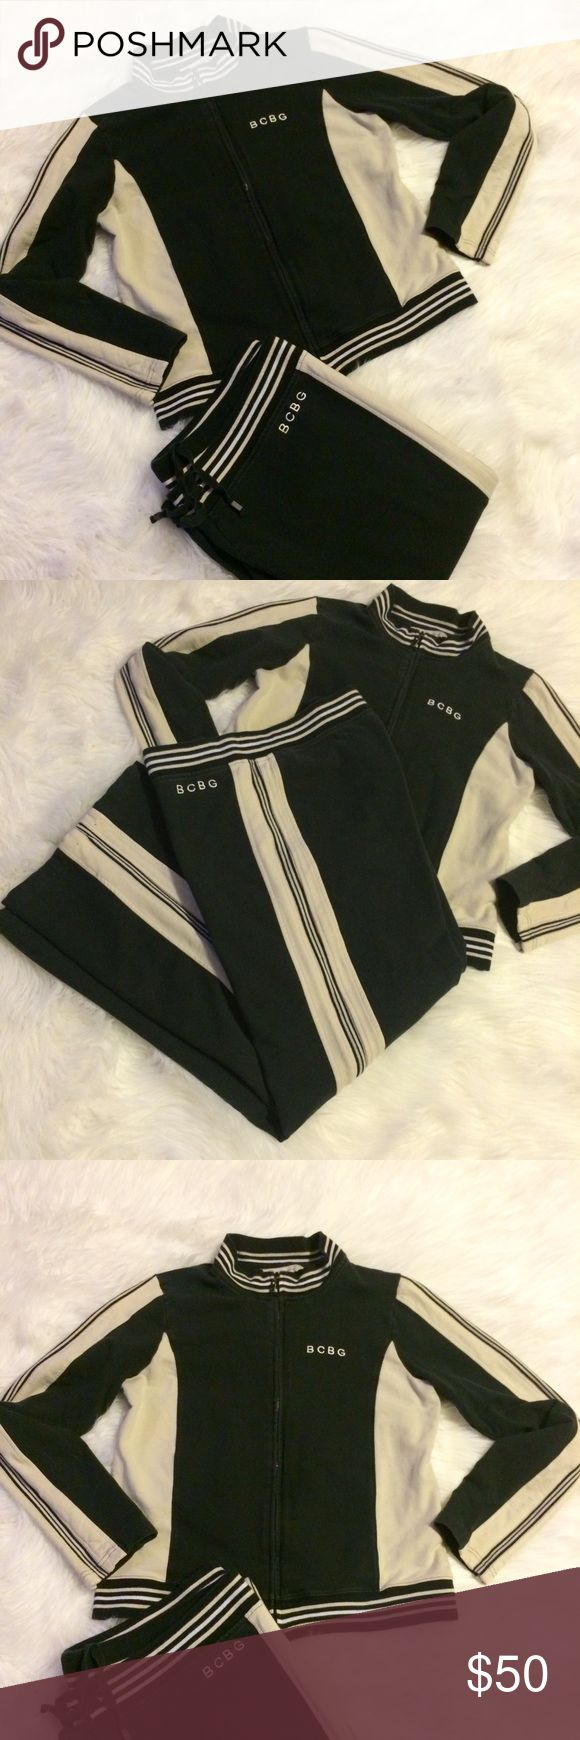 """BCBGeneration Jacket & Pants Black with beige stripes & accents the pants were hemmed to fit my """"petite"""" legs. Pants have a drawstring & Measure 29"""" inseam and 36"""" waist (unstretched) 10"""" rise in the front & 14"""" rise in the back. Pants XL Jacket Large BCBGeneration Jackets & Coats"""